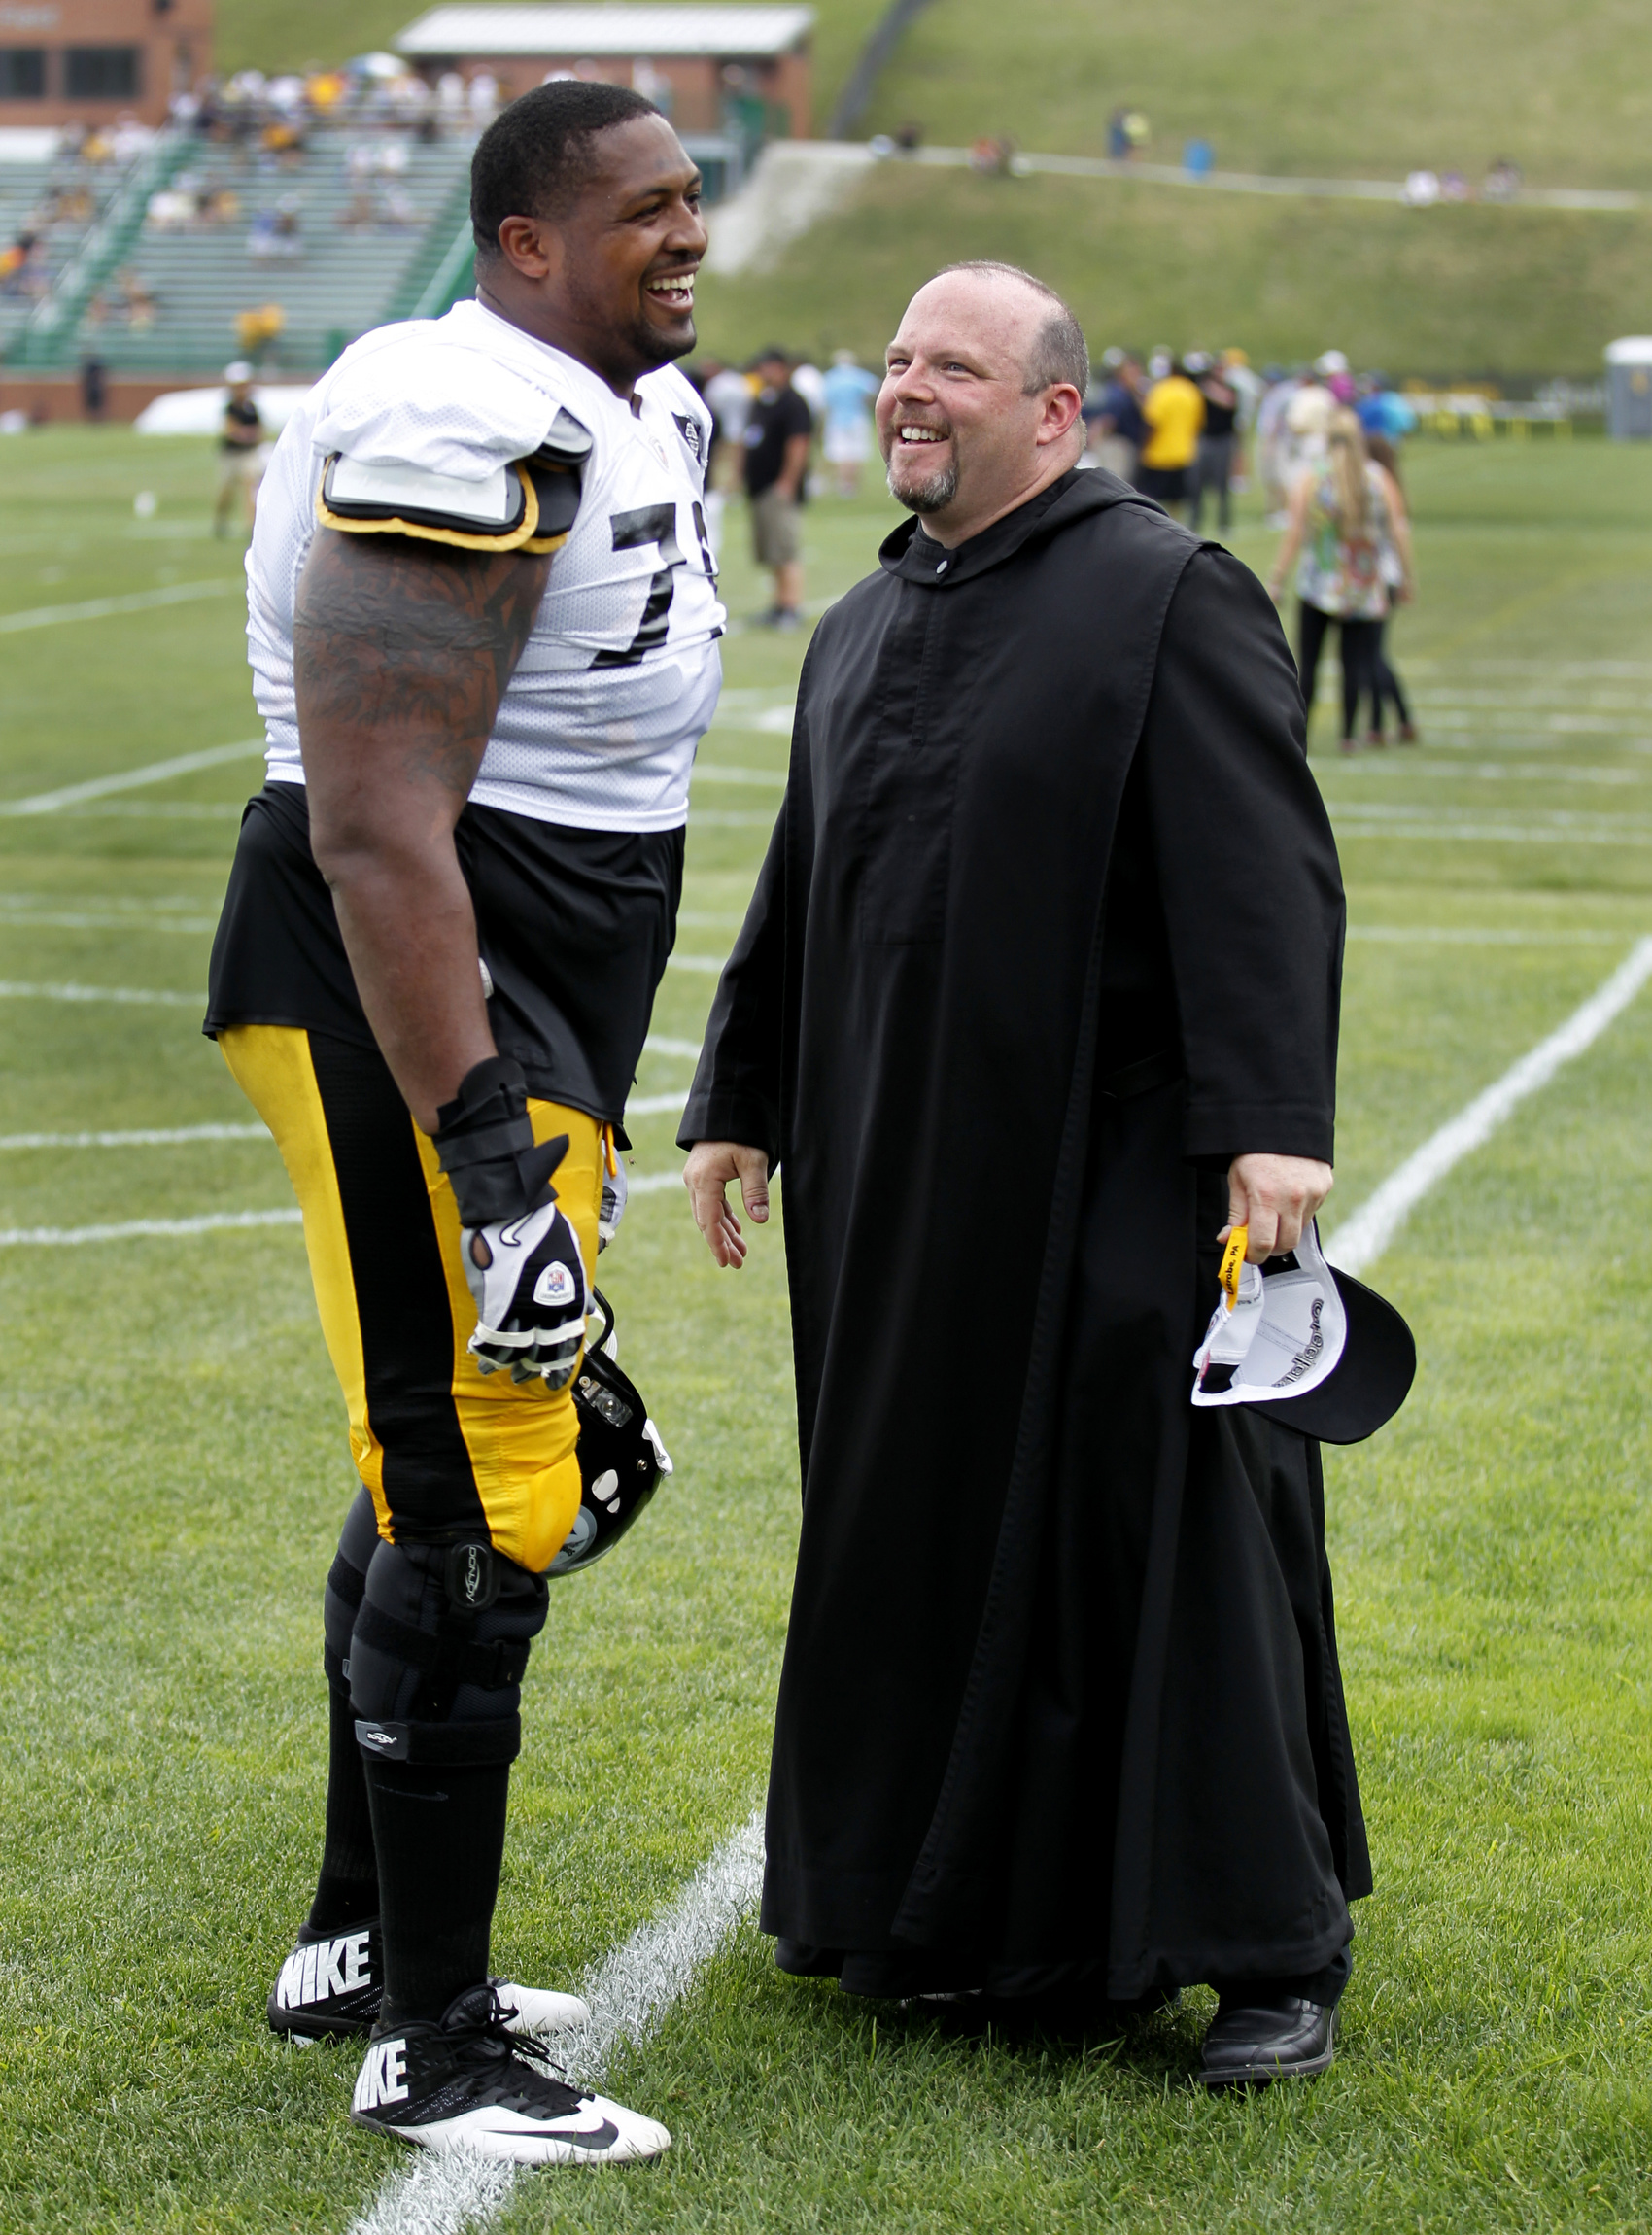 Benedictine Father Paul R. Taylor, executive vice president of St. Vincent College, and Pittsburgh Steelers' offensive guard Ramon Foster, share a laugh after a workout session at the Steelers' football training camp on the college campus in Latrobe, Pa.